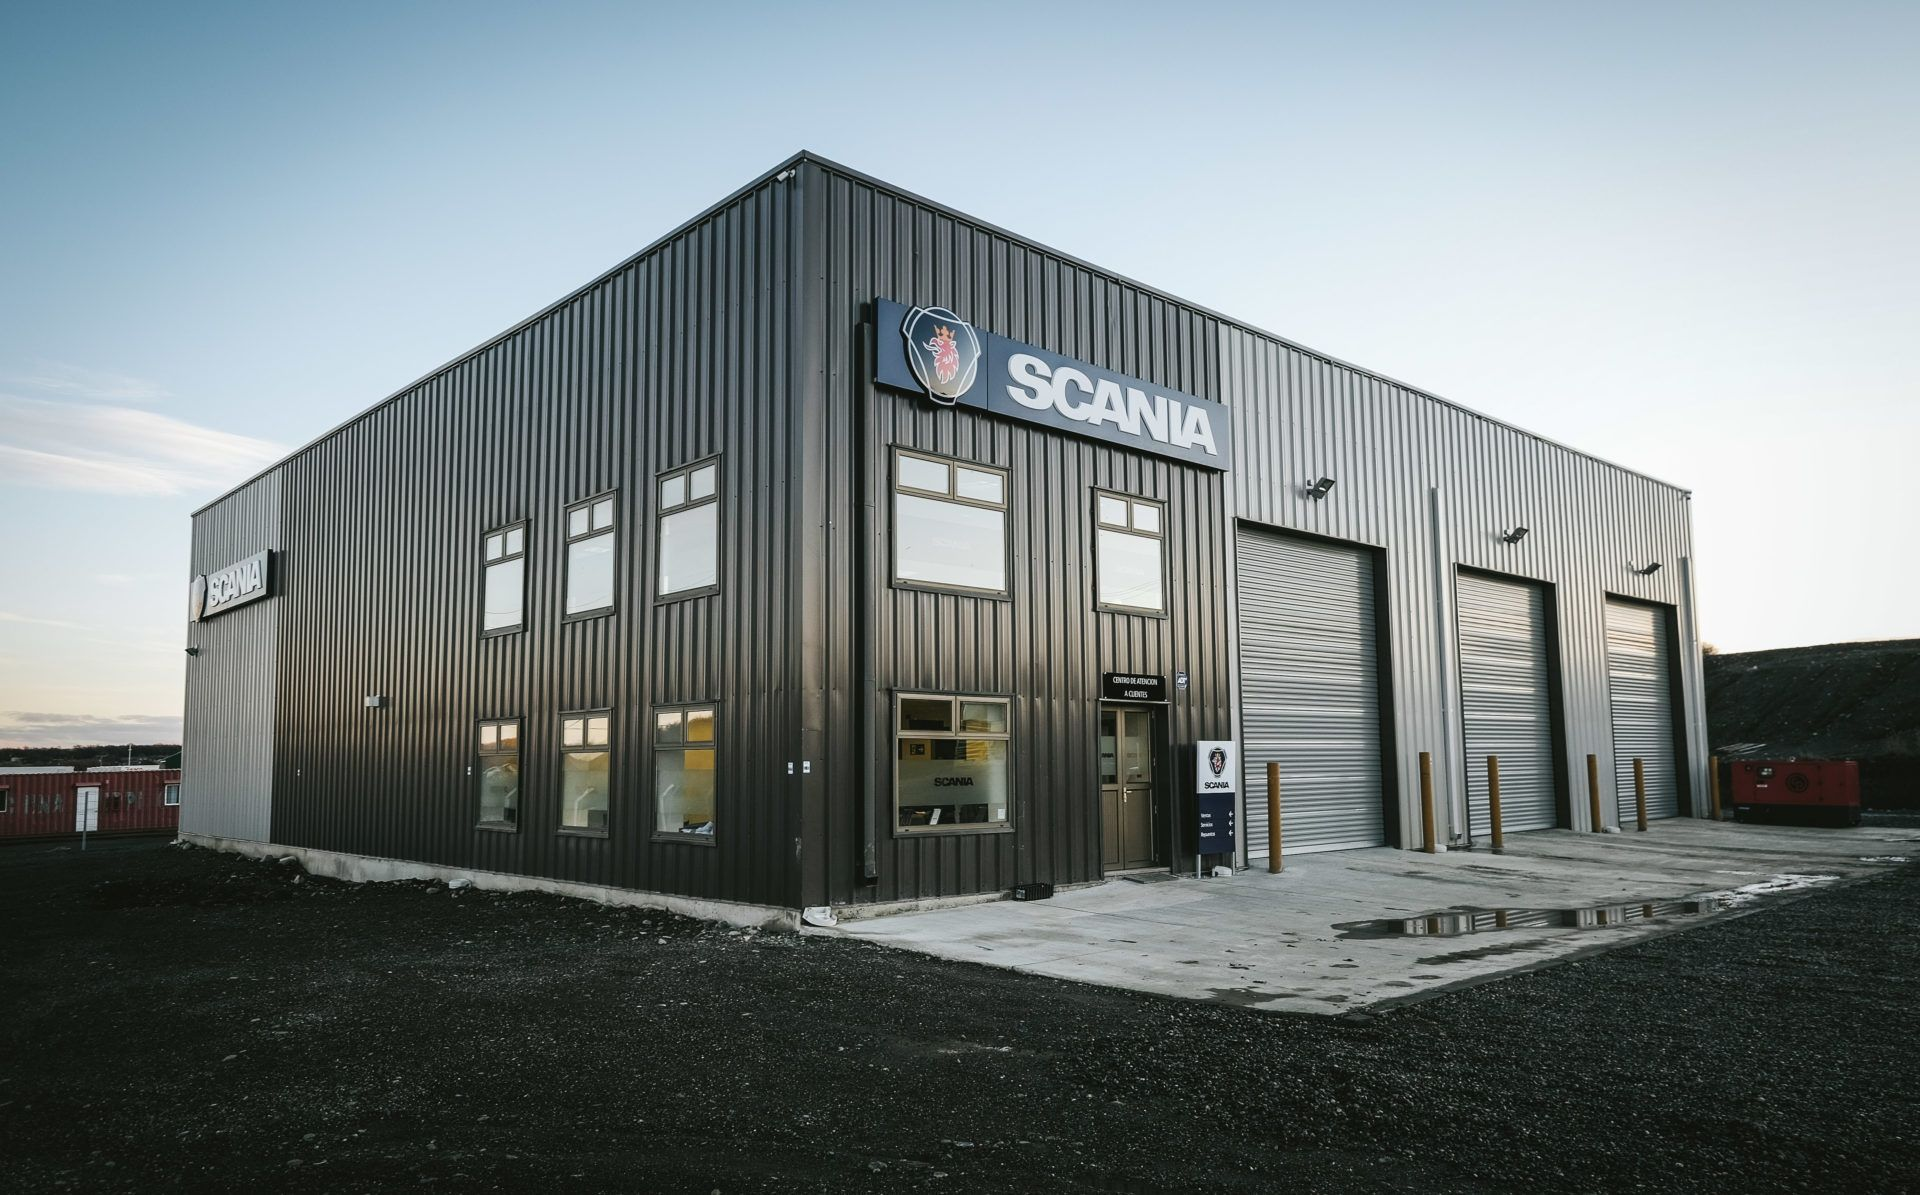 Prefab Steel Building Automotive Workshop 85x87 Scania Warehouse Located In Punta Arenas Chile Steel Buildings Building Metal Buildings